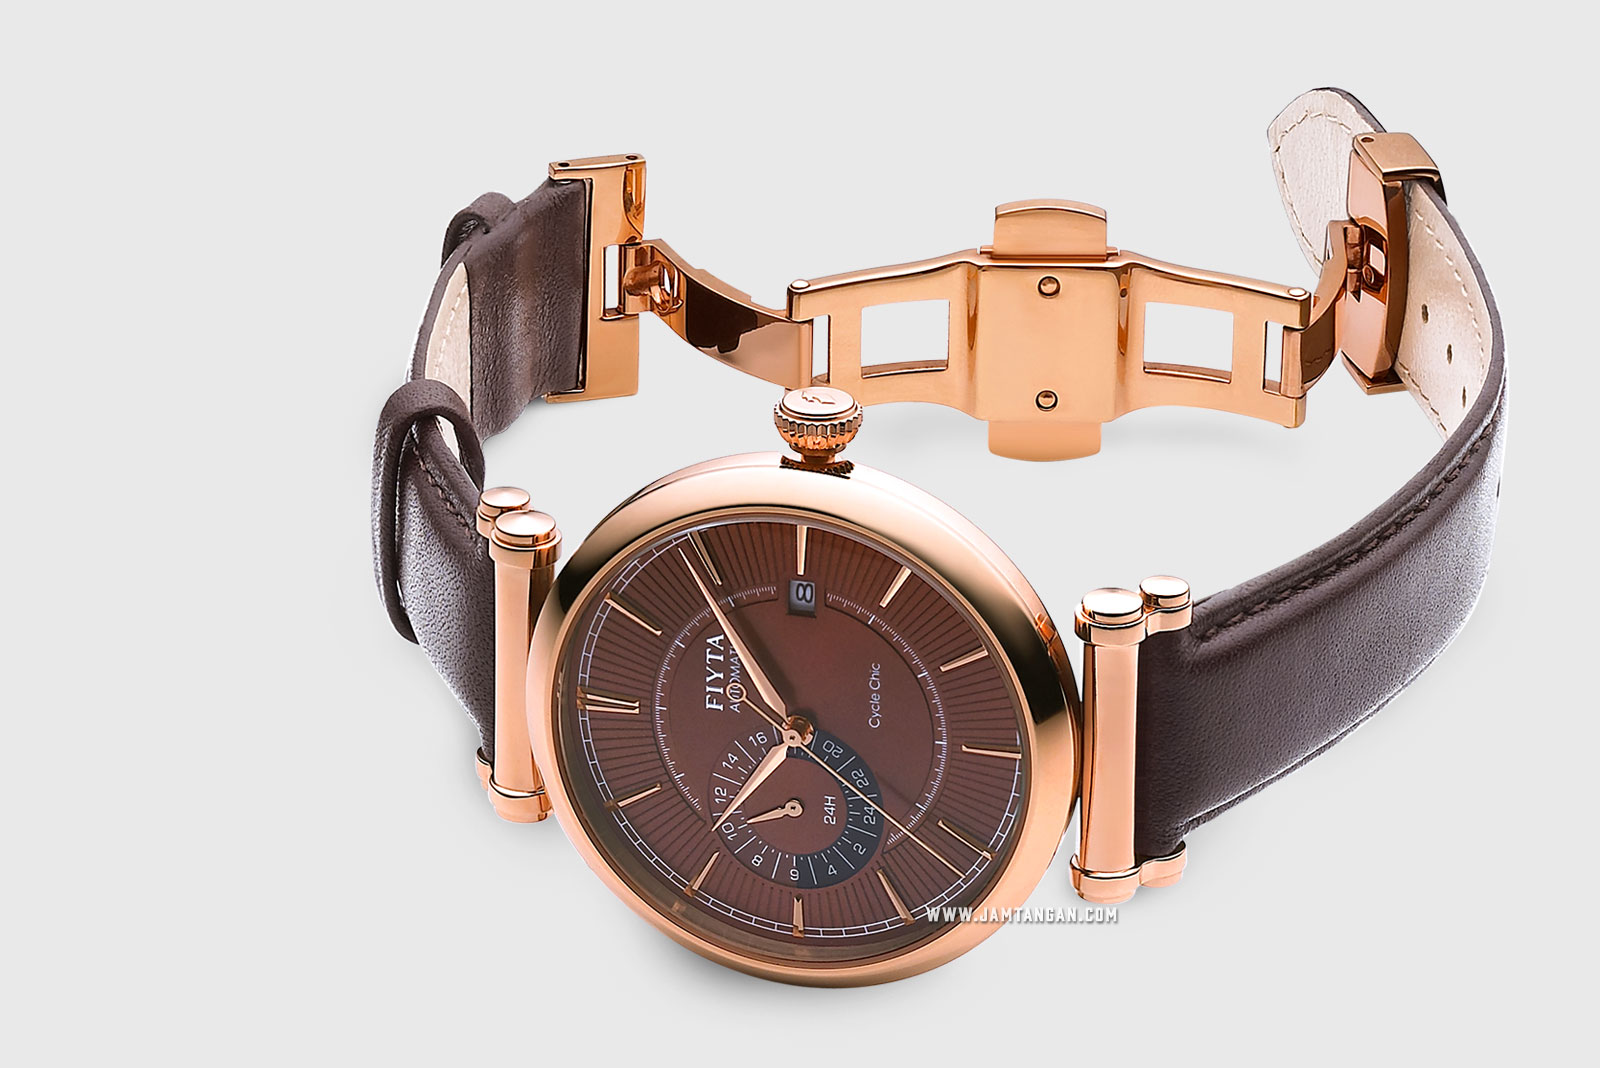 FIYTA GA850001.PSR IN Automatic Man Brown Dial Brown Leather Strap Machtwatch